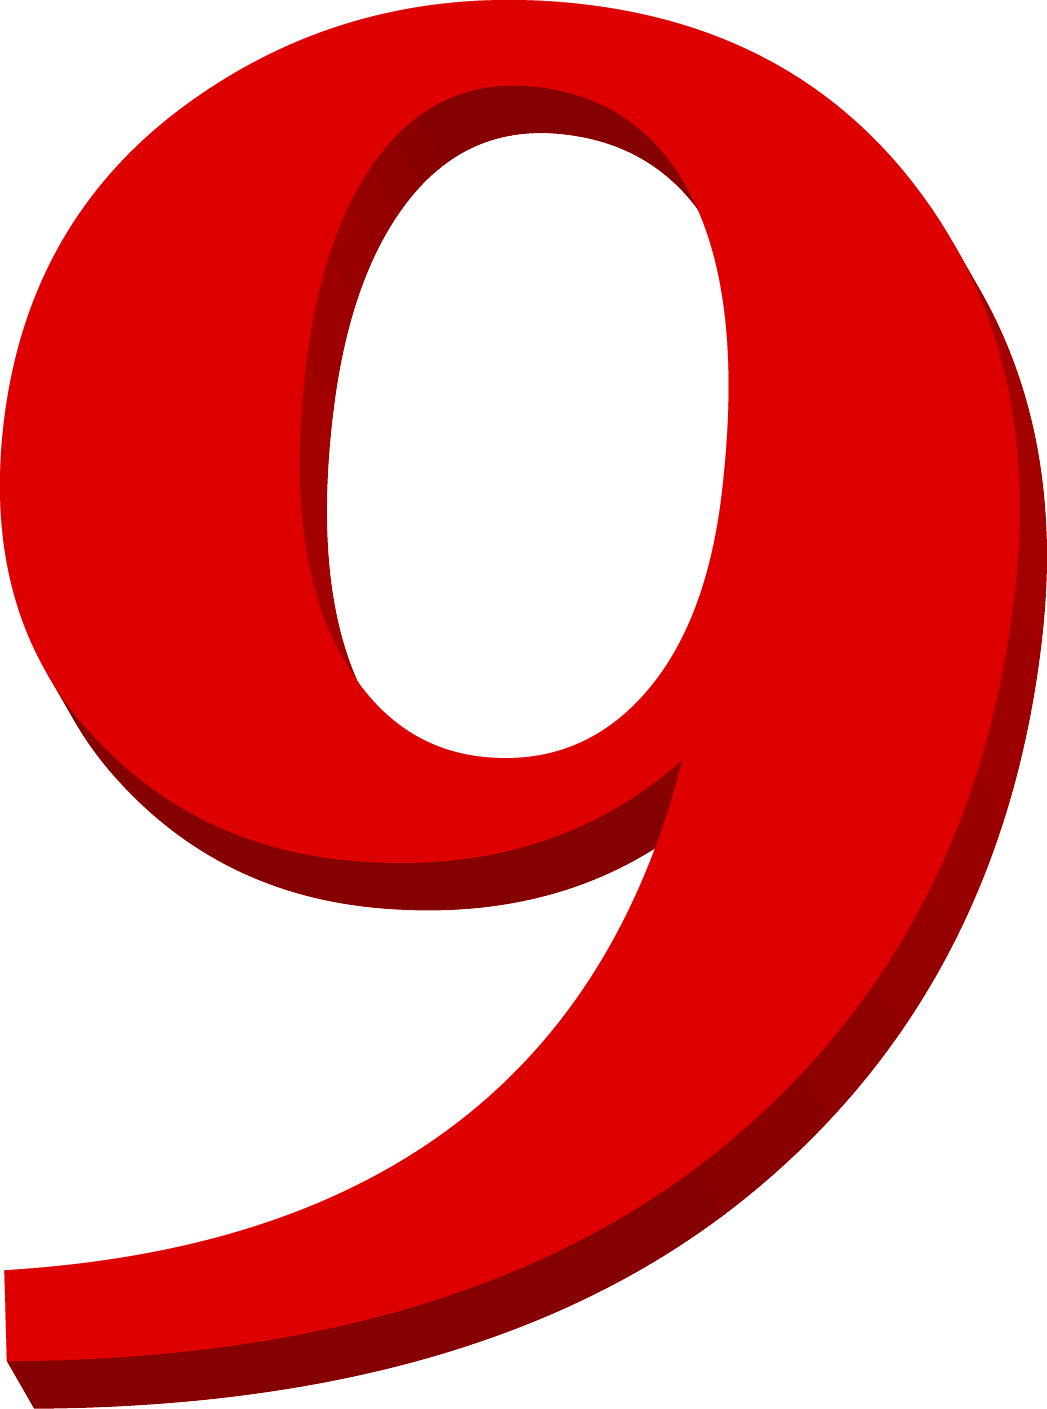 Red Number 9.